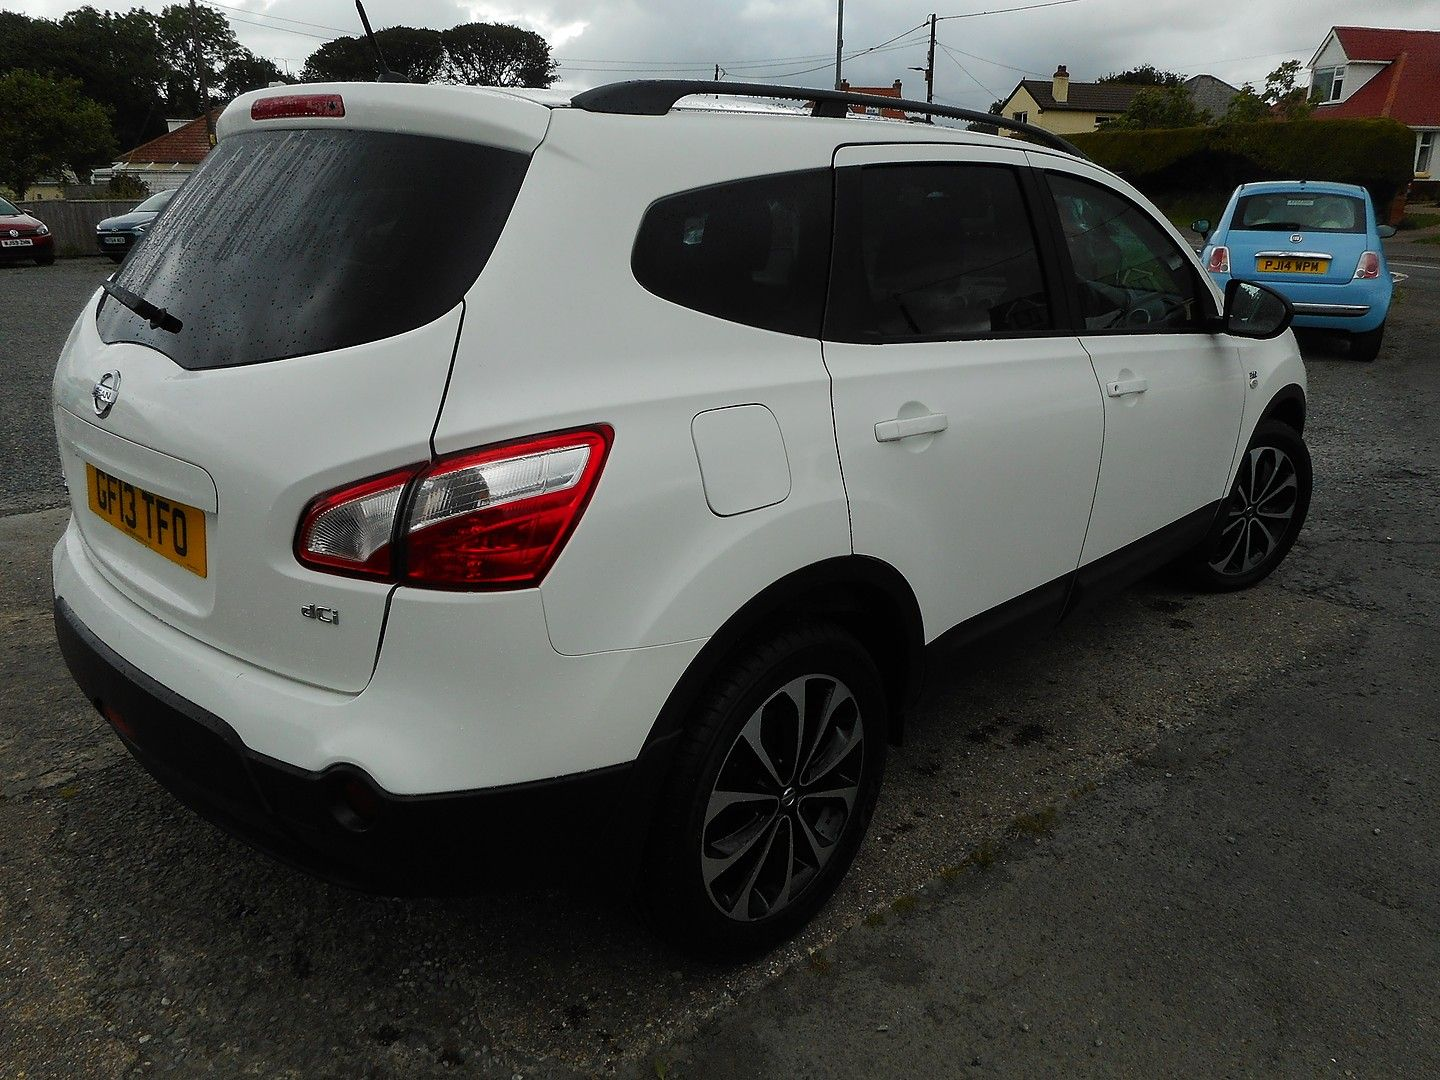 NISSAN QASHQAI 360 1.5 dCi 7 SEATER (2013) - Picture 3